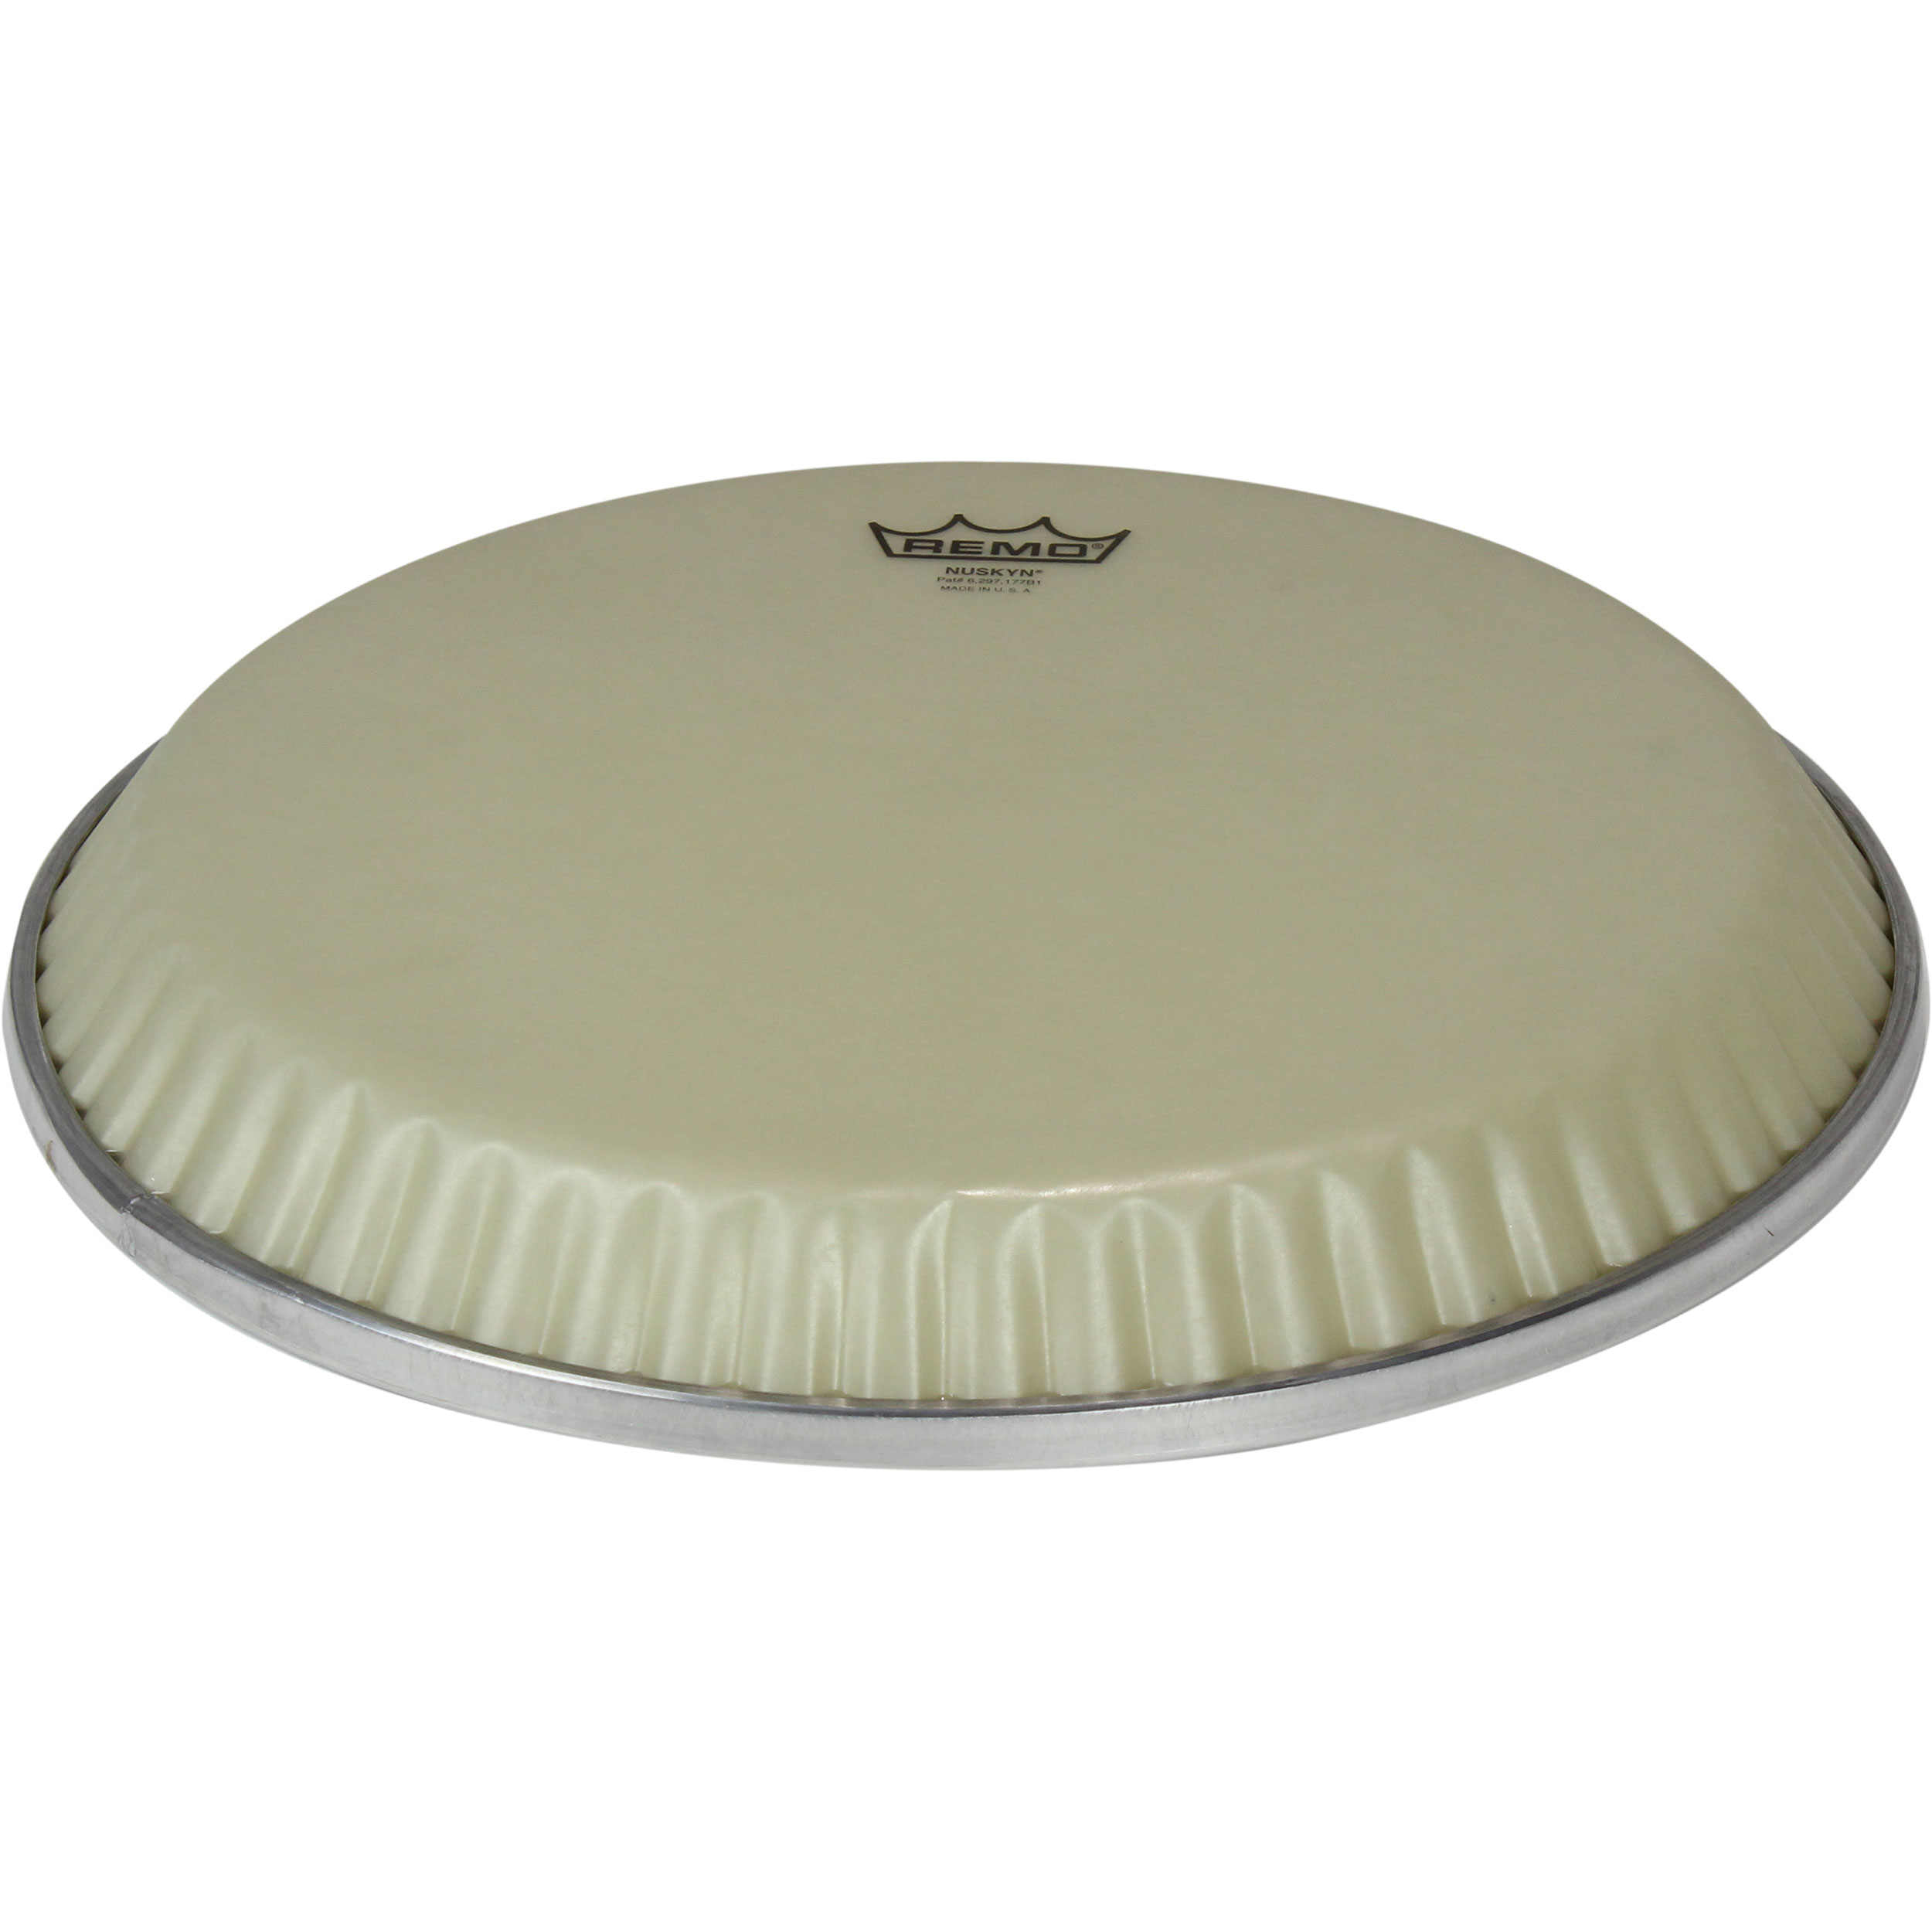 "Remo 11.06"" Low-Profile Symmetry Nuskyn Conga Drum Head (D3 Collar)"